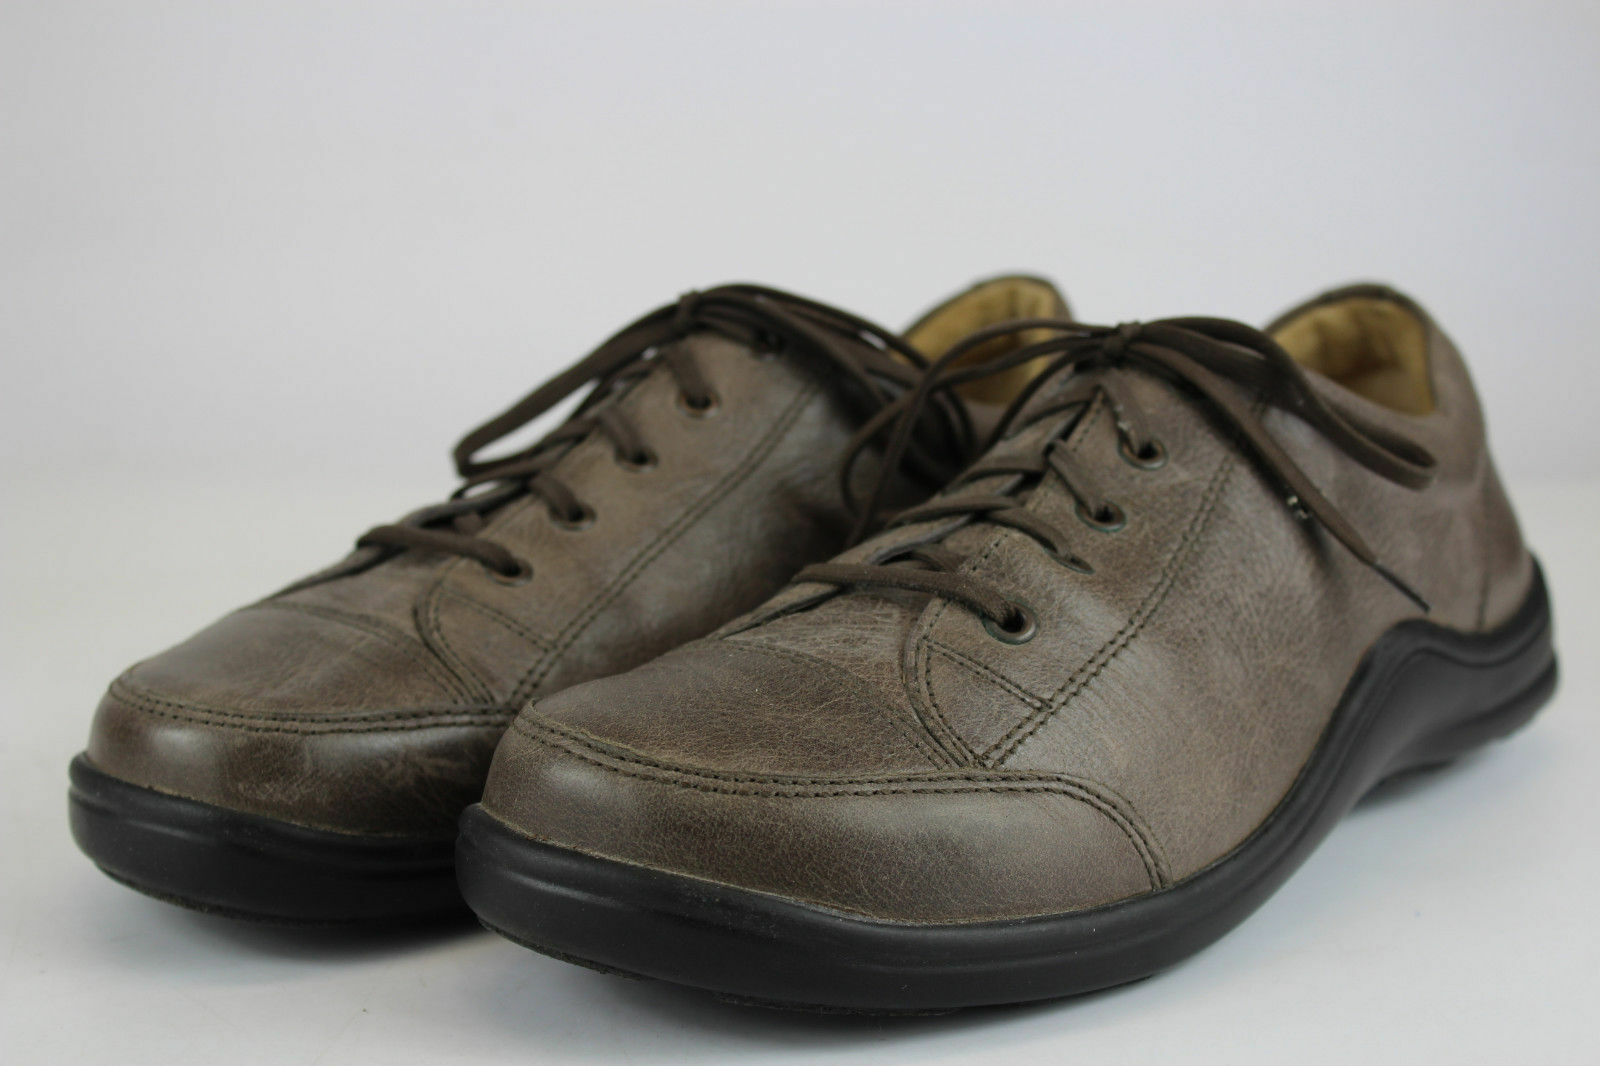 NEW ARRIVAL::FINN COMFORT-MENS- 8 - 8 1/2 US (42 EU ) Soho Model  S-18-W-72